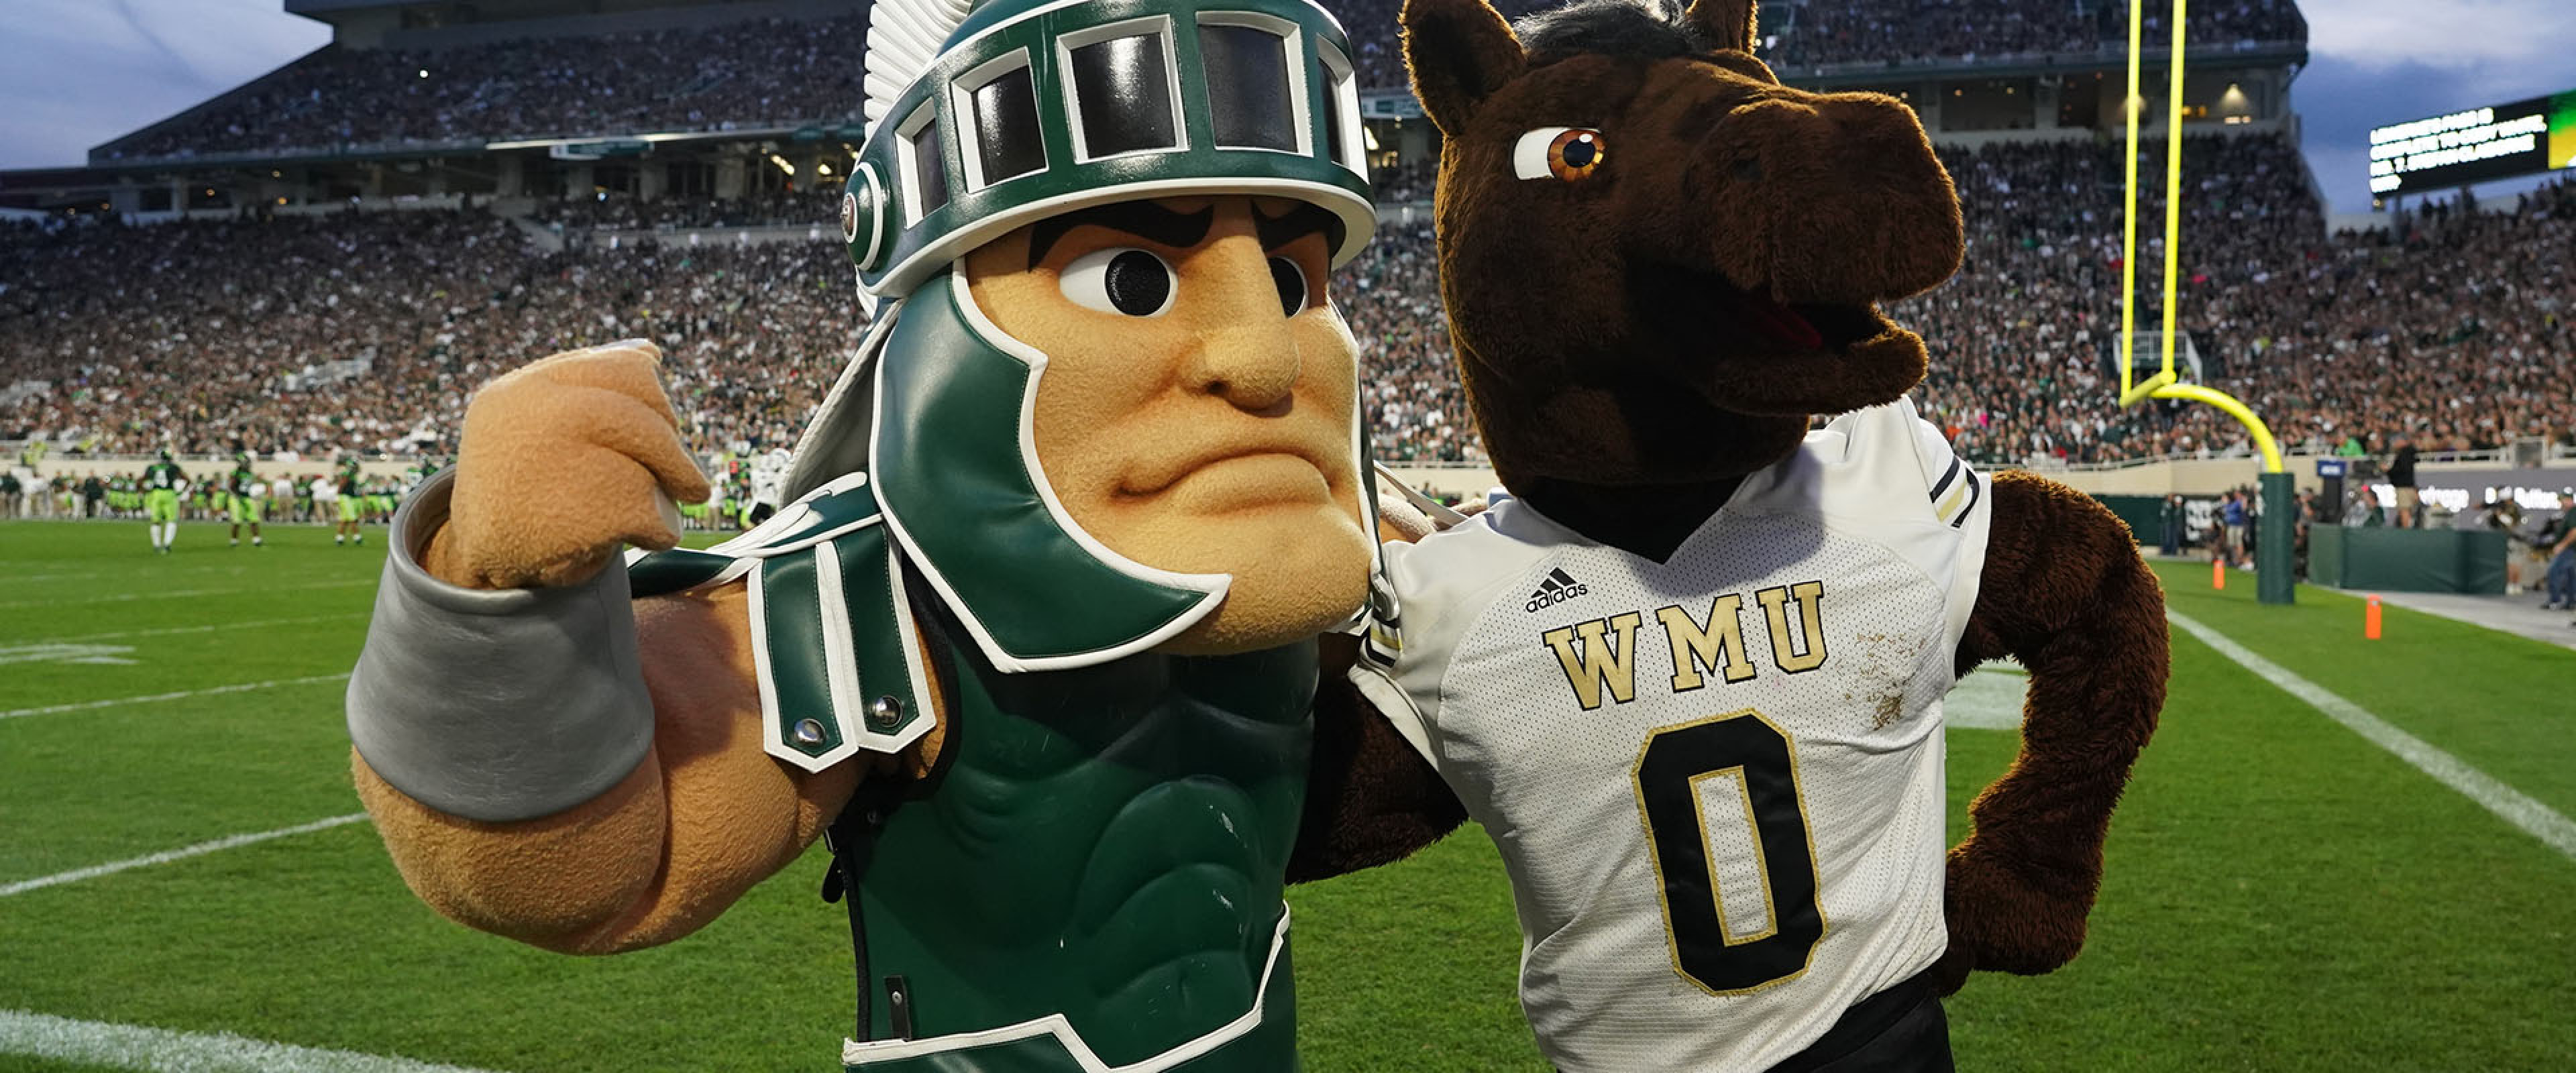 WMU mascot Buster Bronco stands arm-in-arm with MSU mascot Sparty